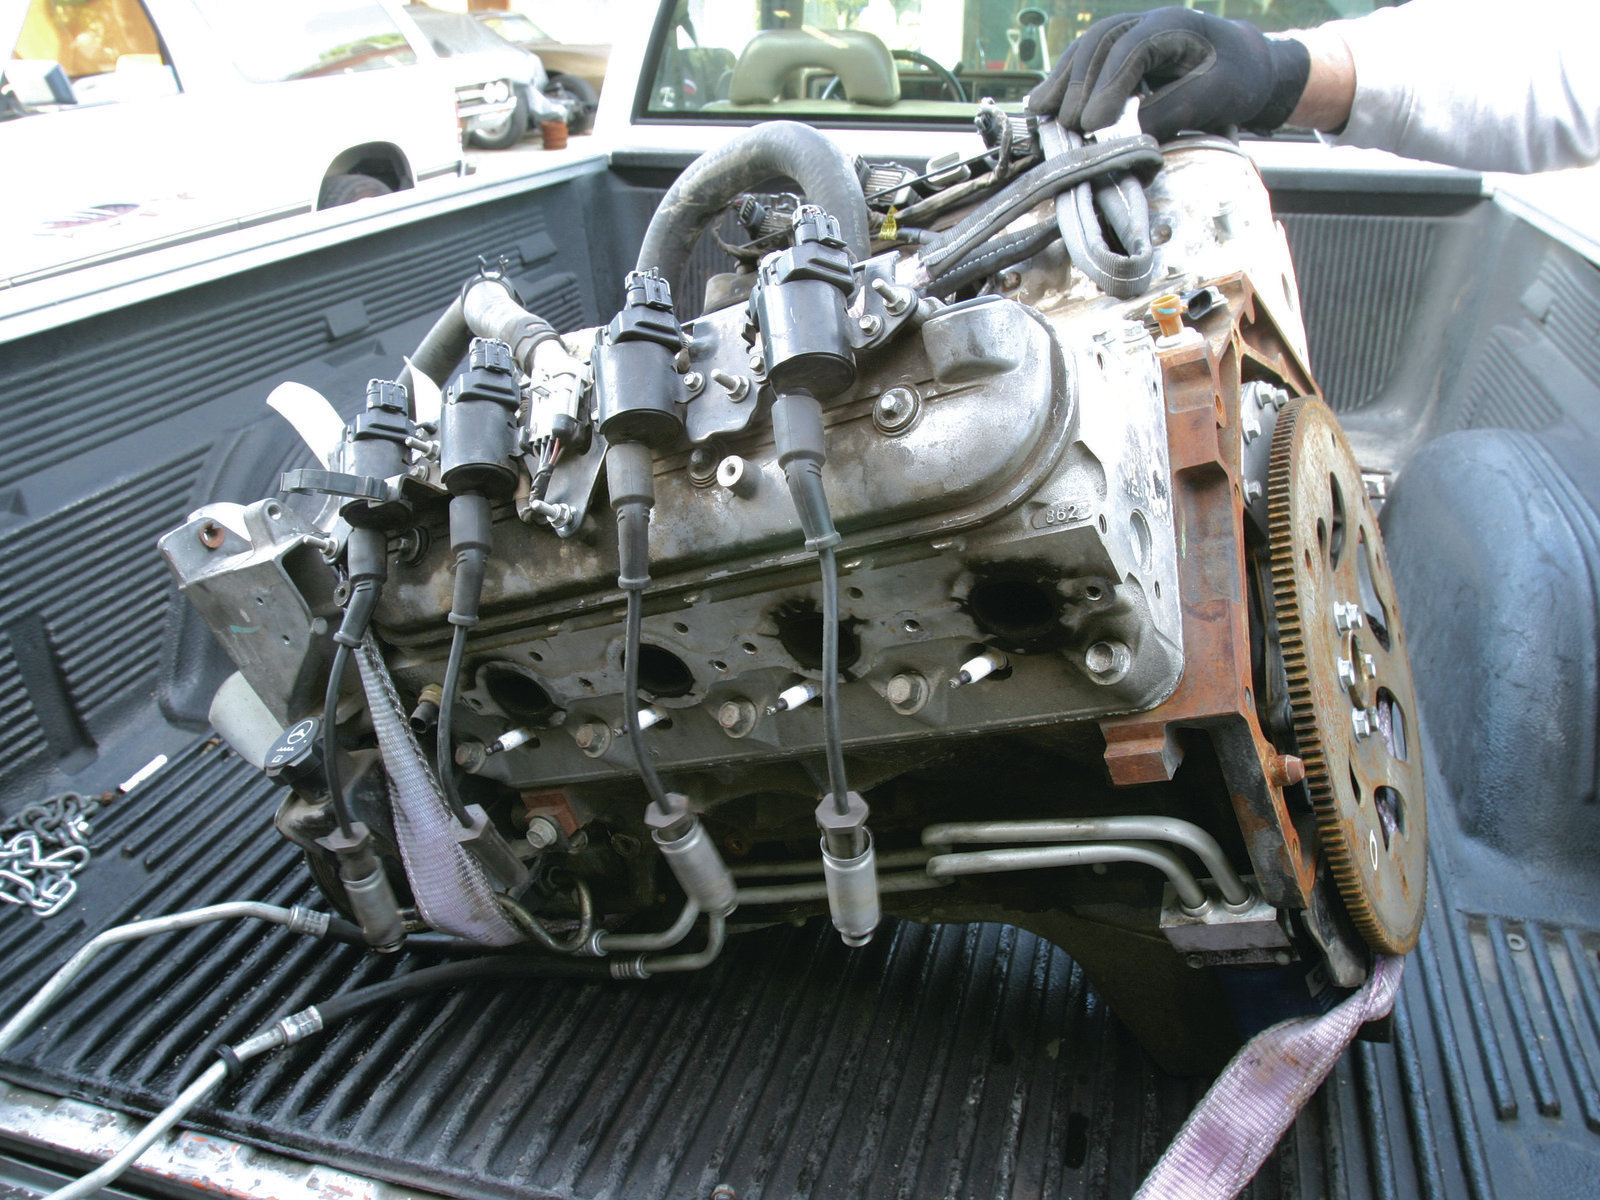 How To Identify All Those Different Late Model Gm V8 Engines Hot 2000 Chevy Silverado 5 3 Engine Crank Sensor Wiring Diagram Also The Attractive Thing About Used 48 53l Iron Block Truck Is Their Dirt Cheap Availability Motors Are Easy By Large